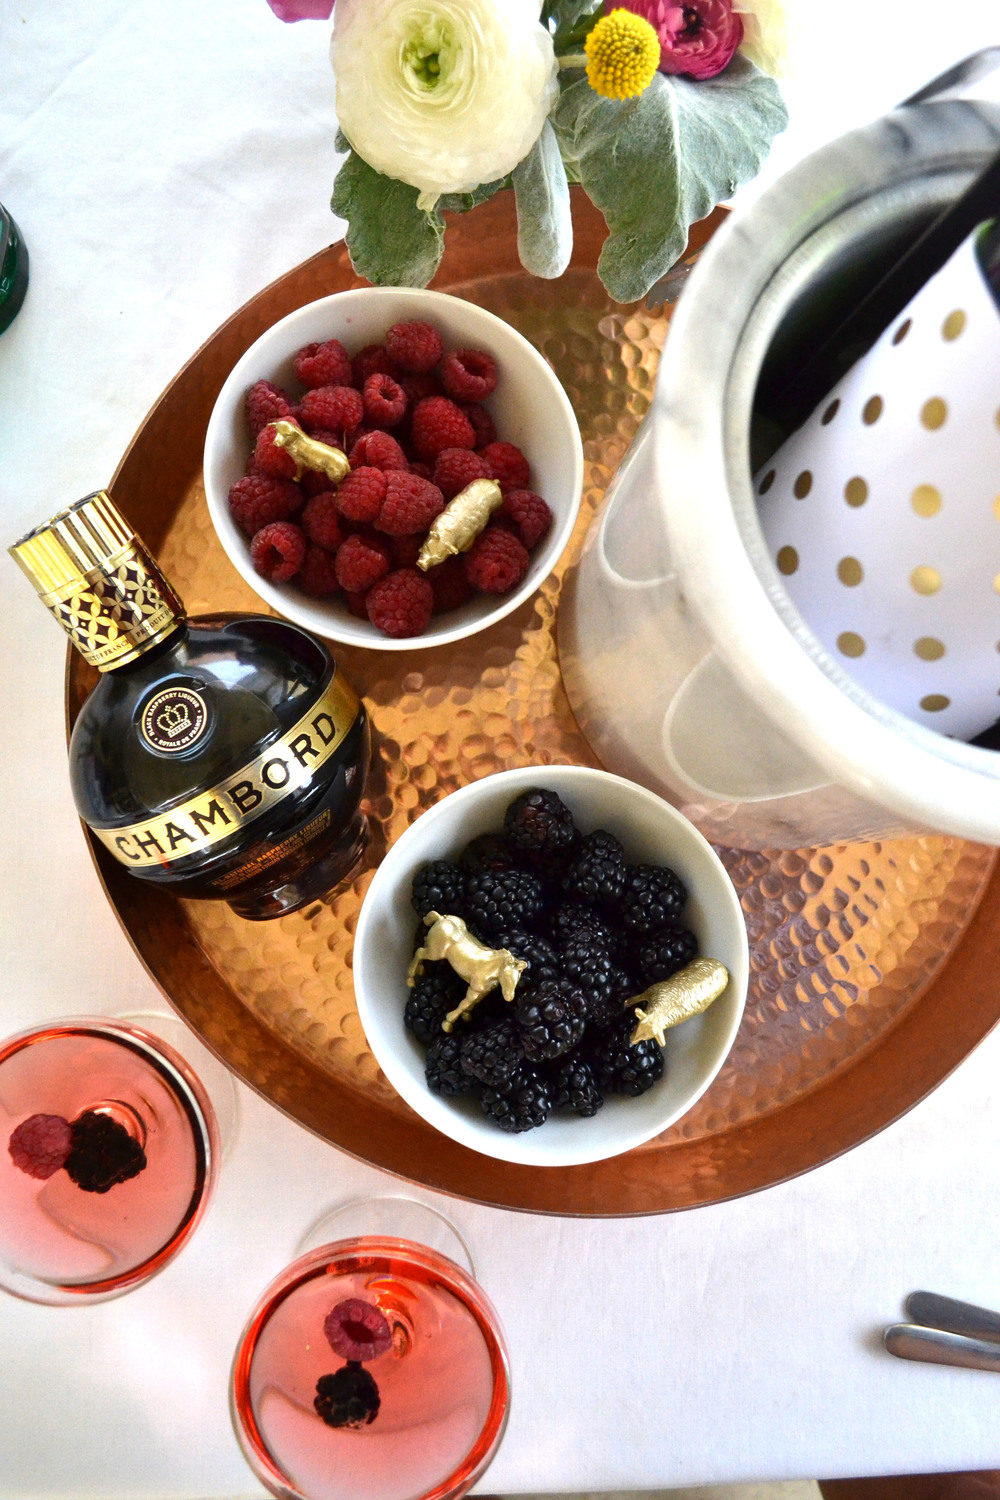 Berries are a must for any Chambord cocktail.